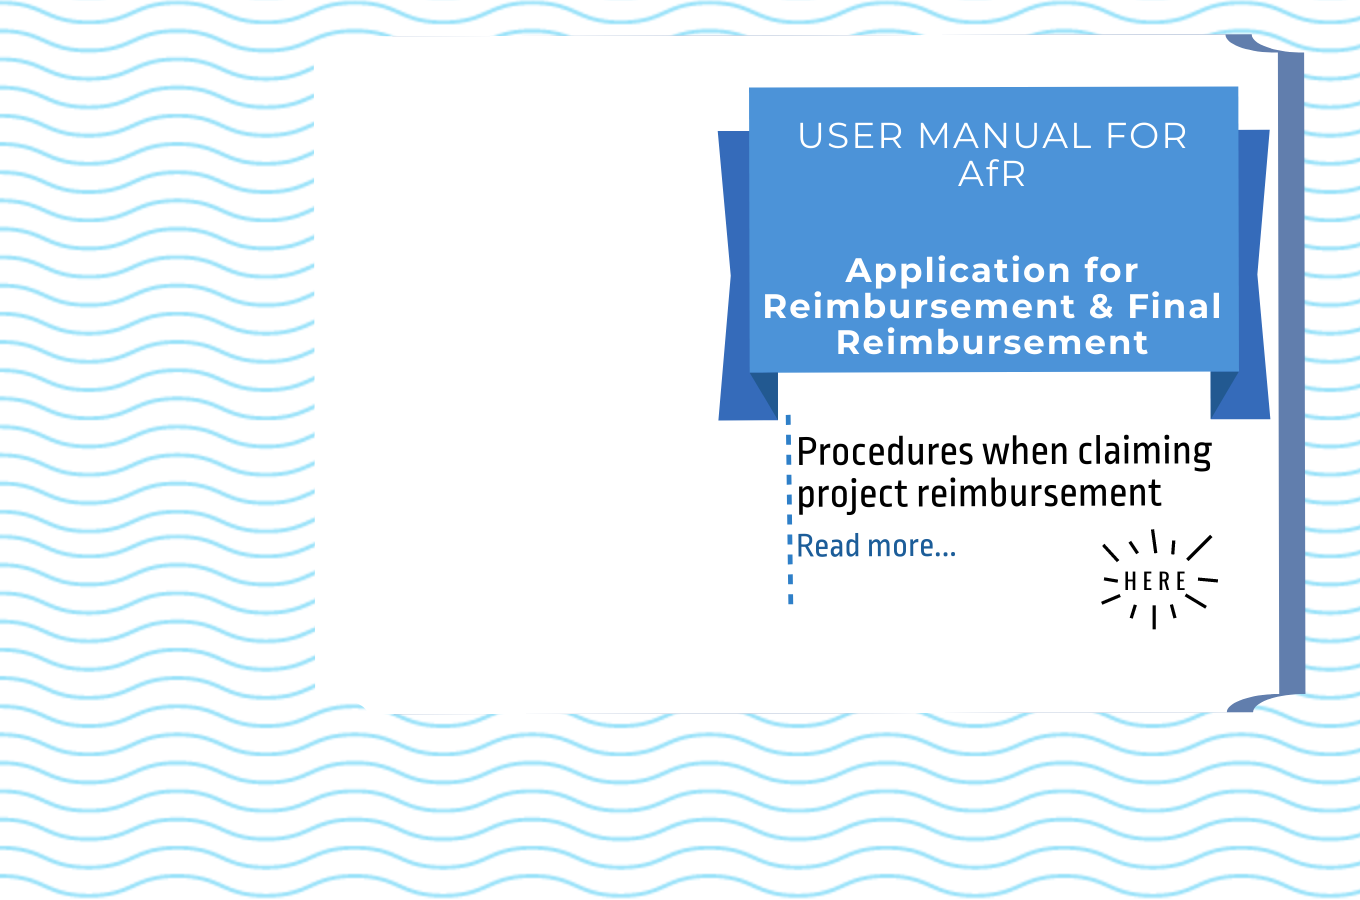 New User Manual - Application for Reimbursement & Final Reimbursement